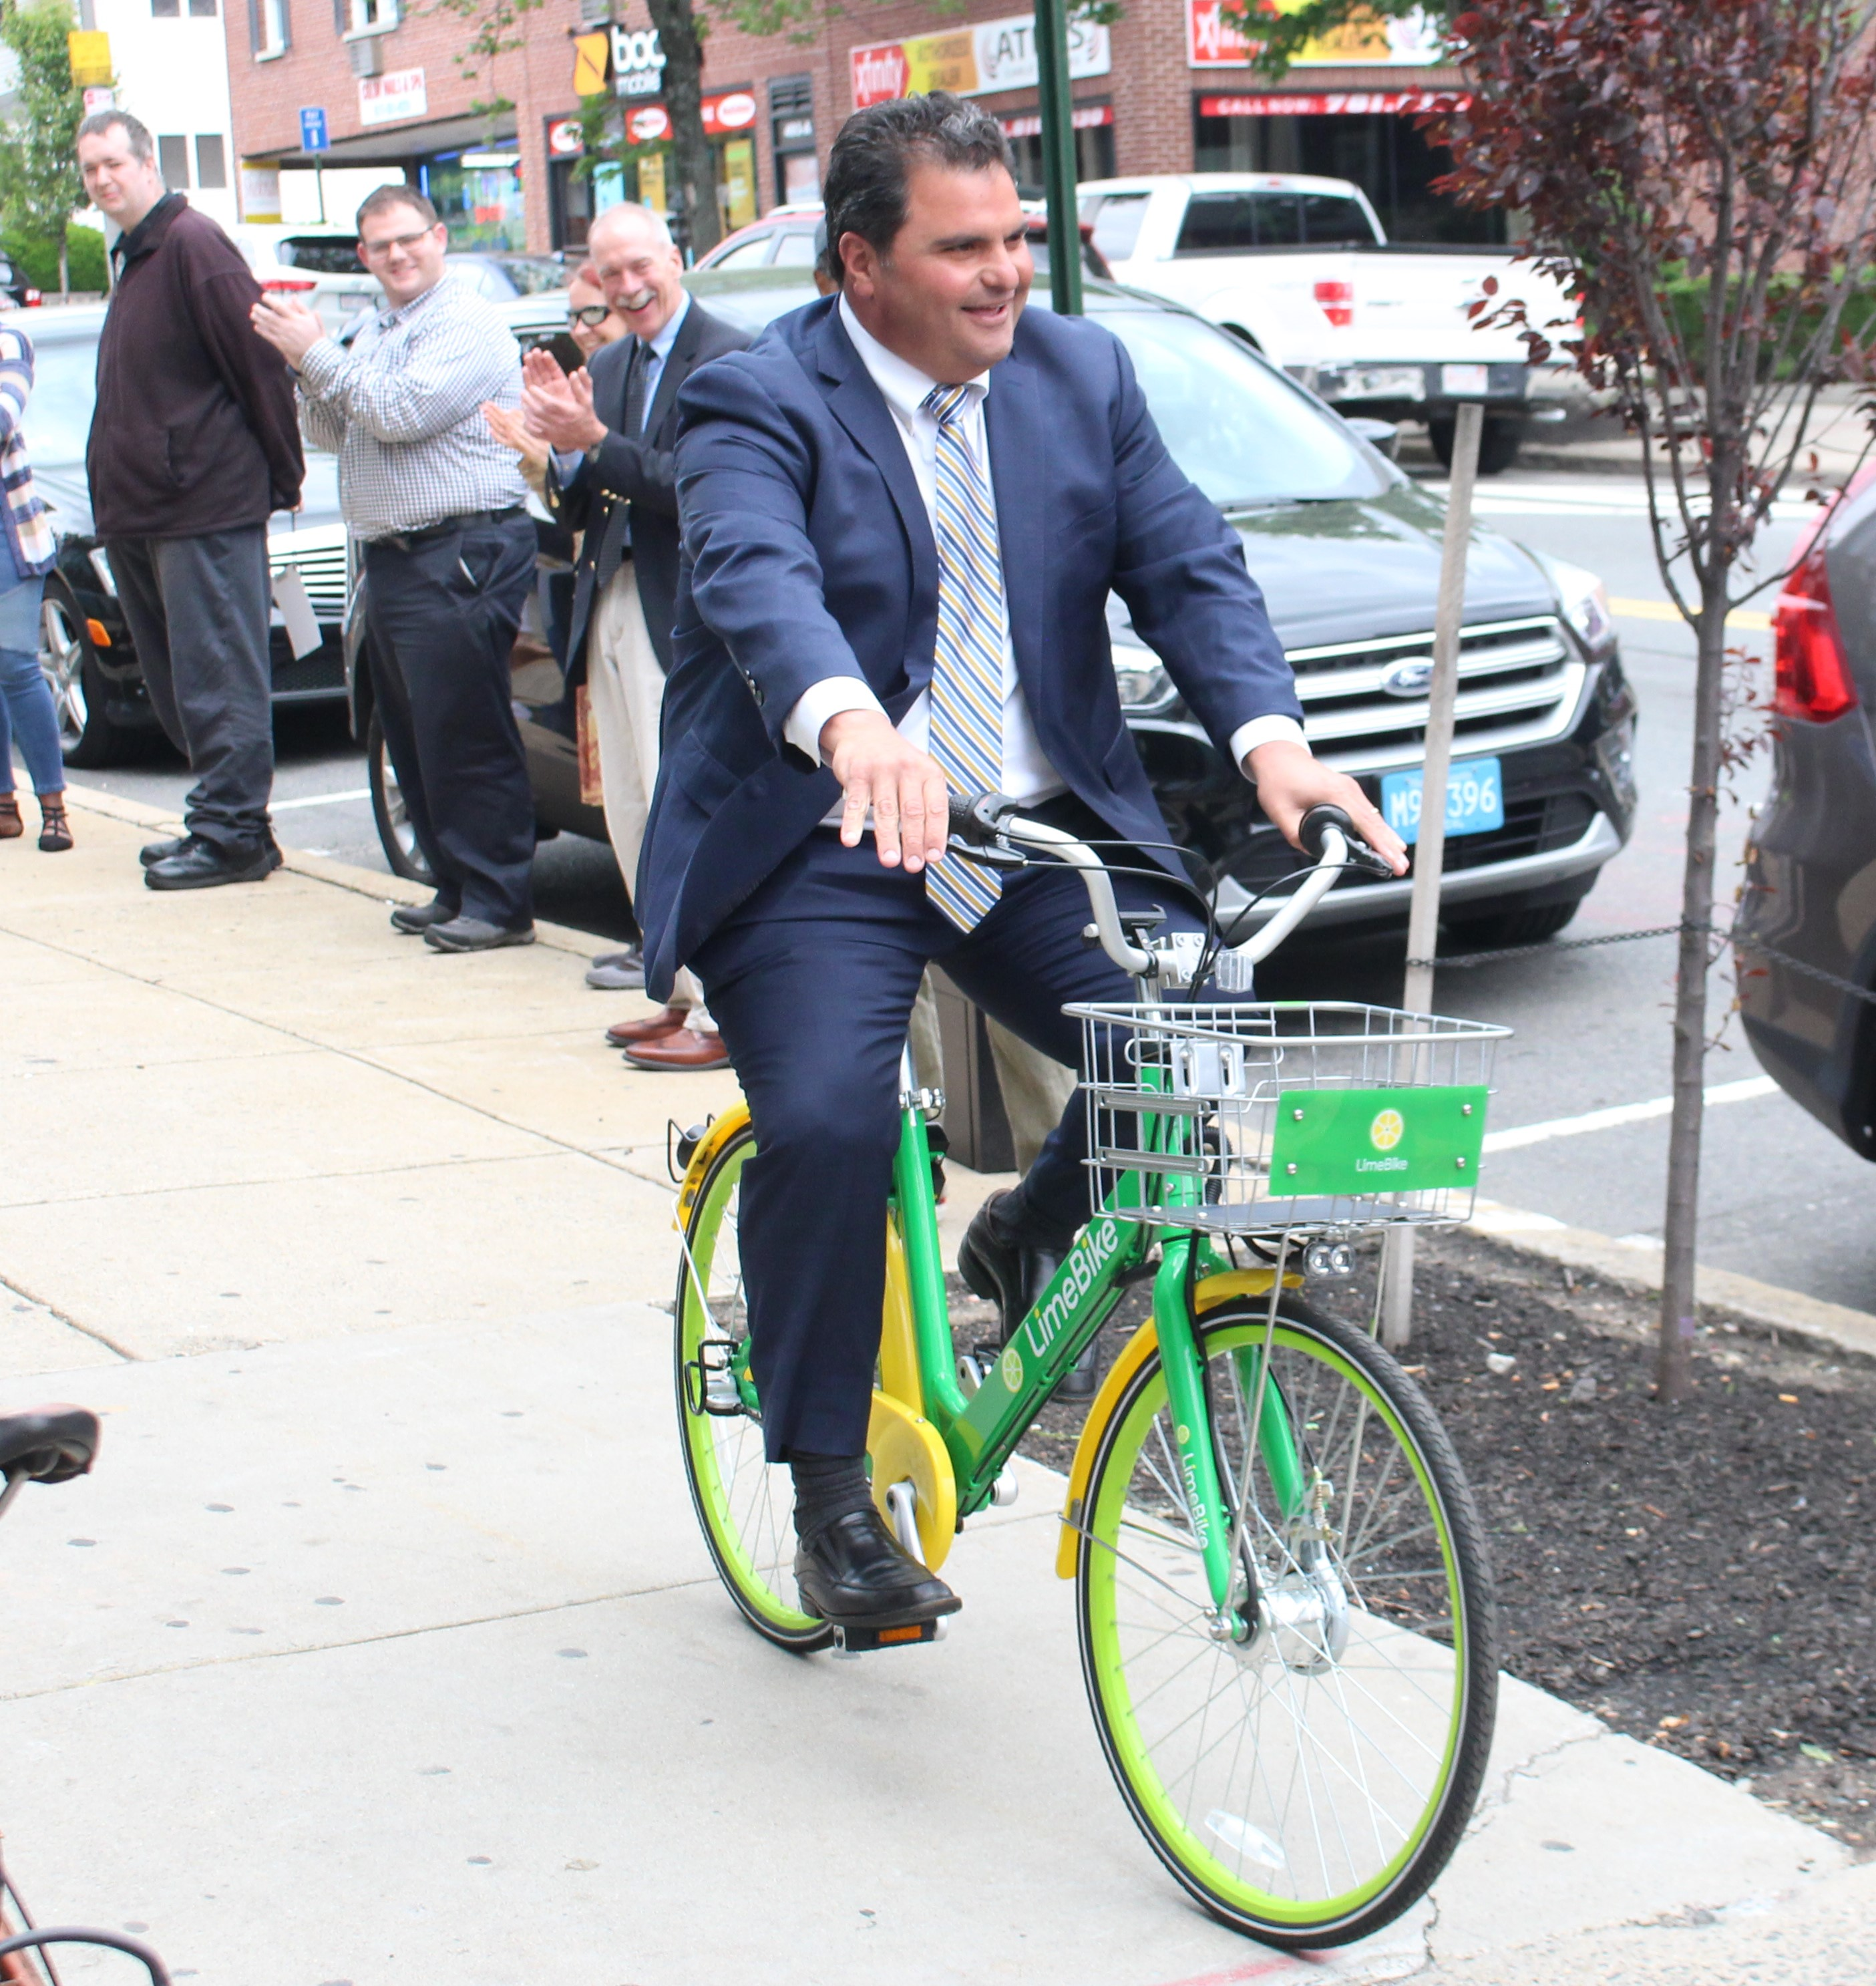 Mayor Carlo DeMaria takes one of the city's new Limebikes for a spin around the block.